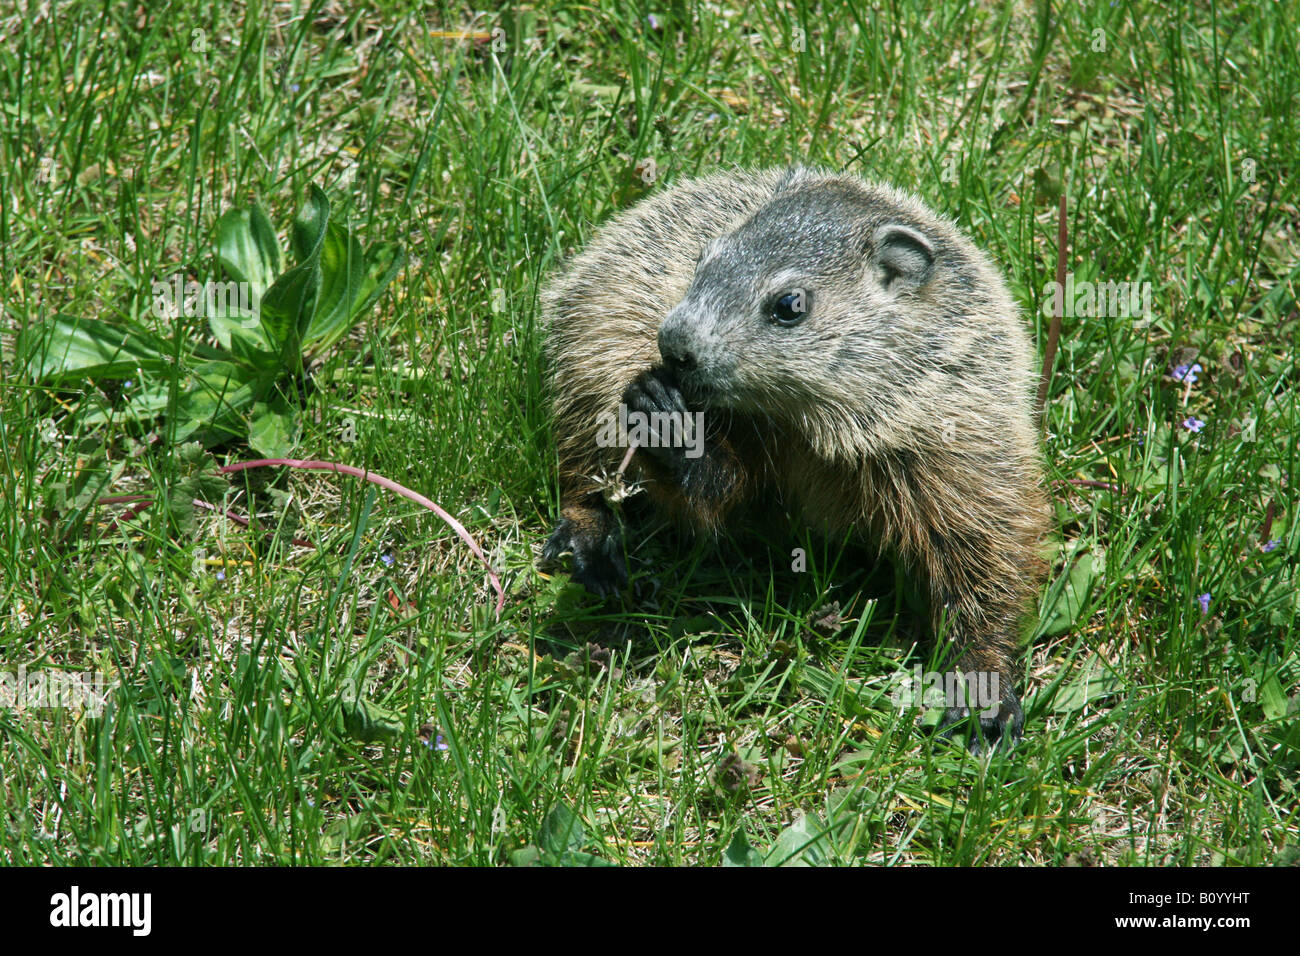 Young Groundhog Woodchuck Marmota monax eating dandelions Eastern United States - Stock Image